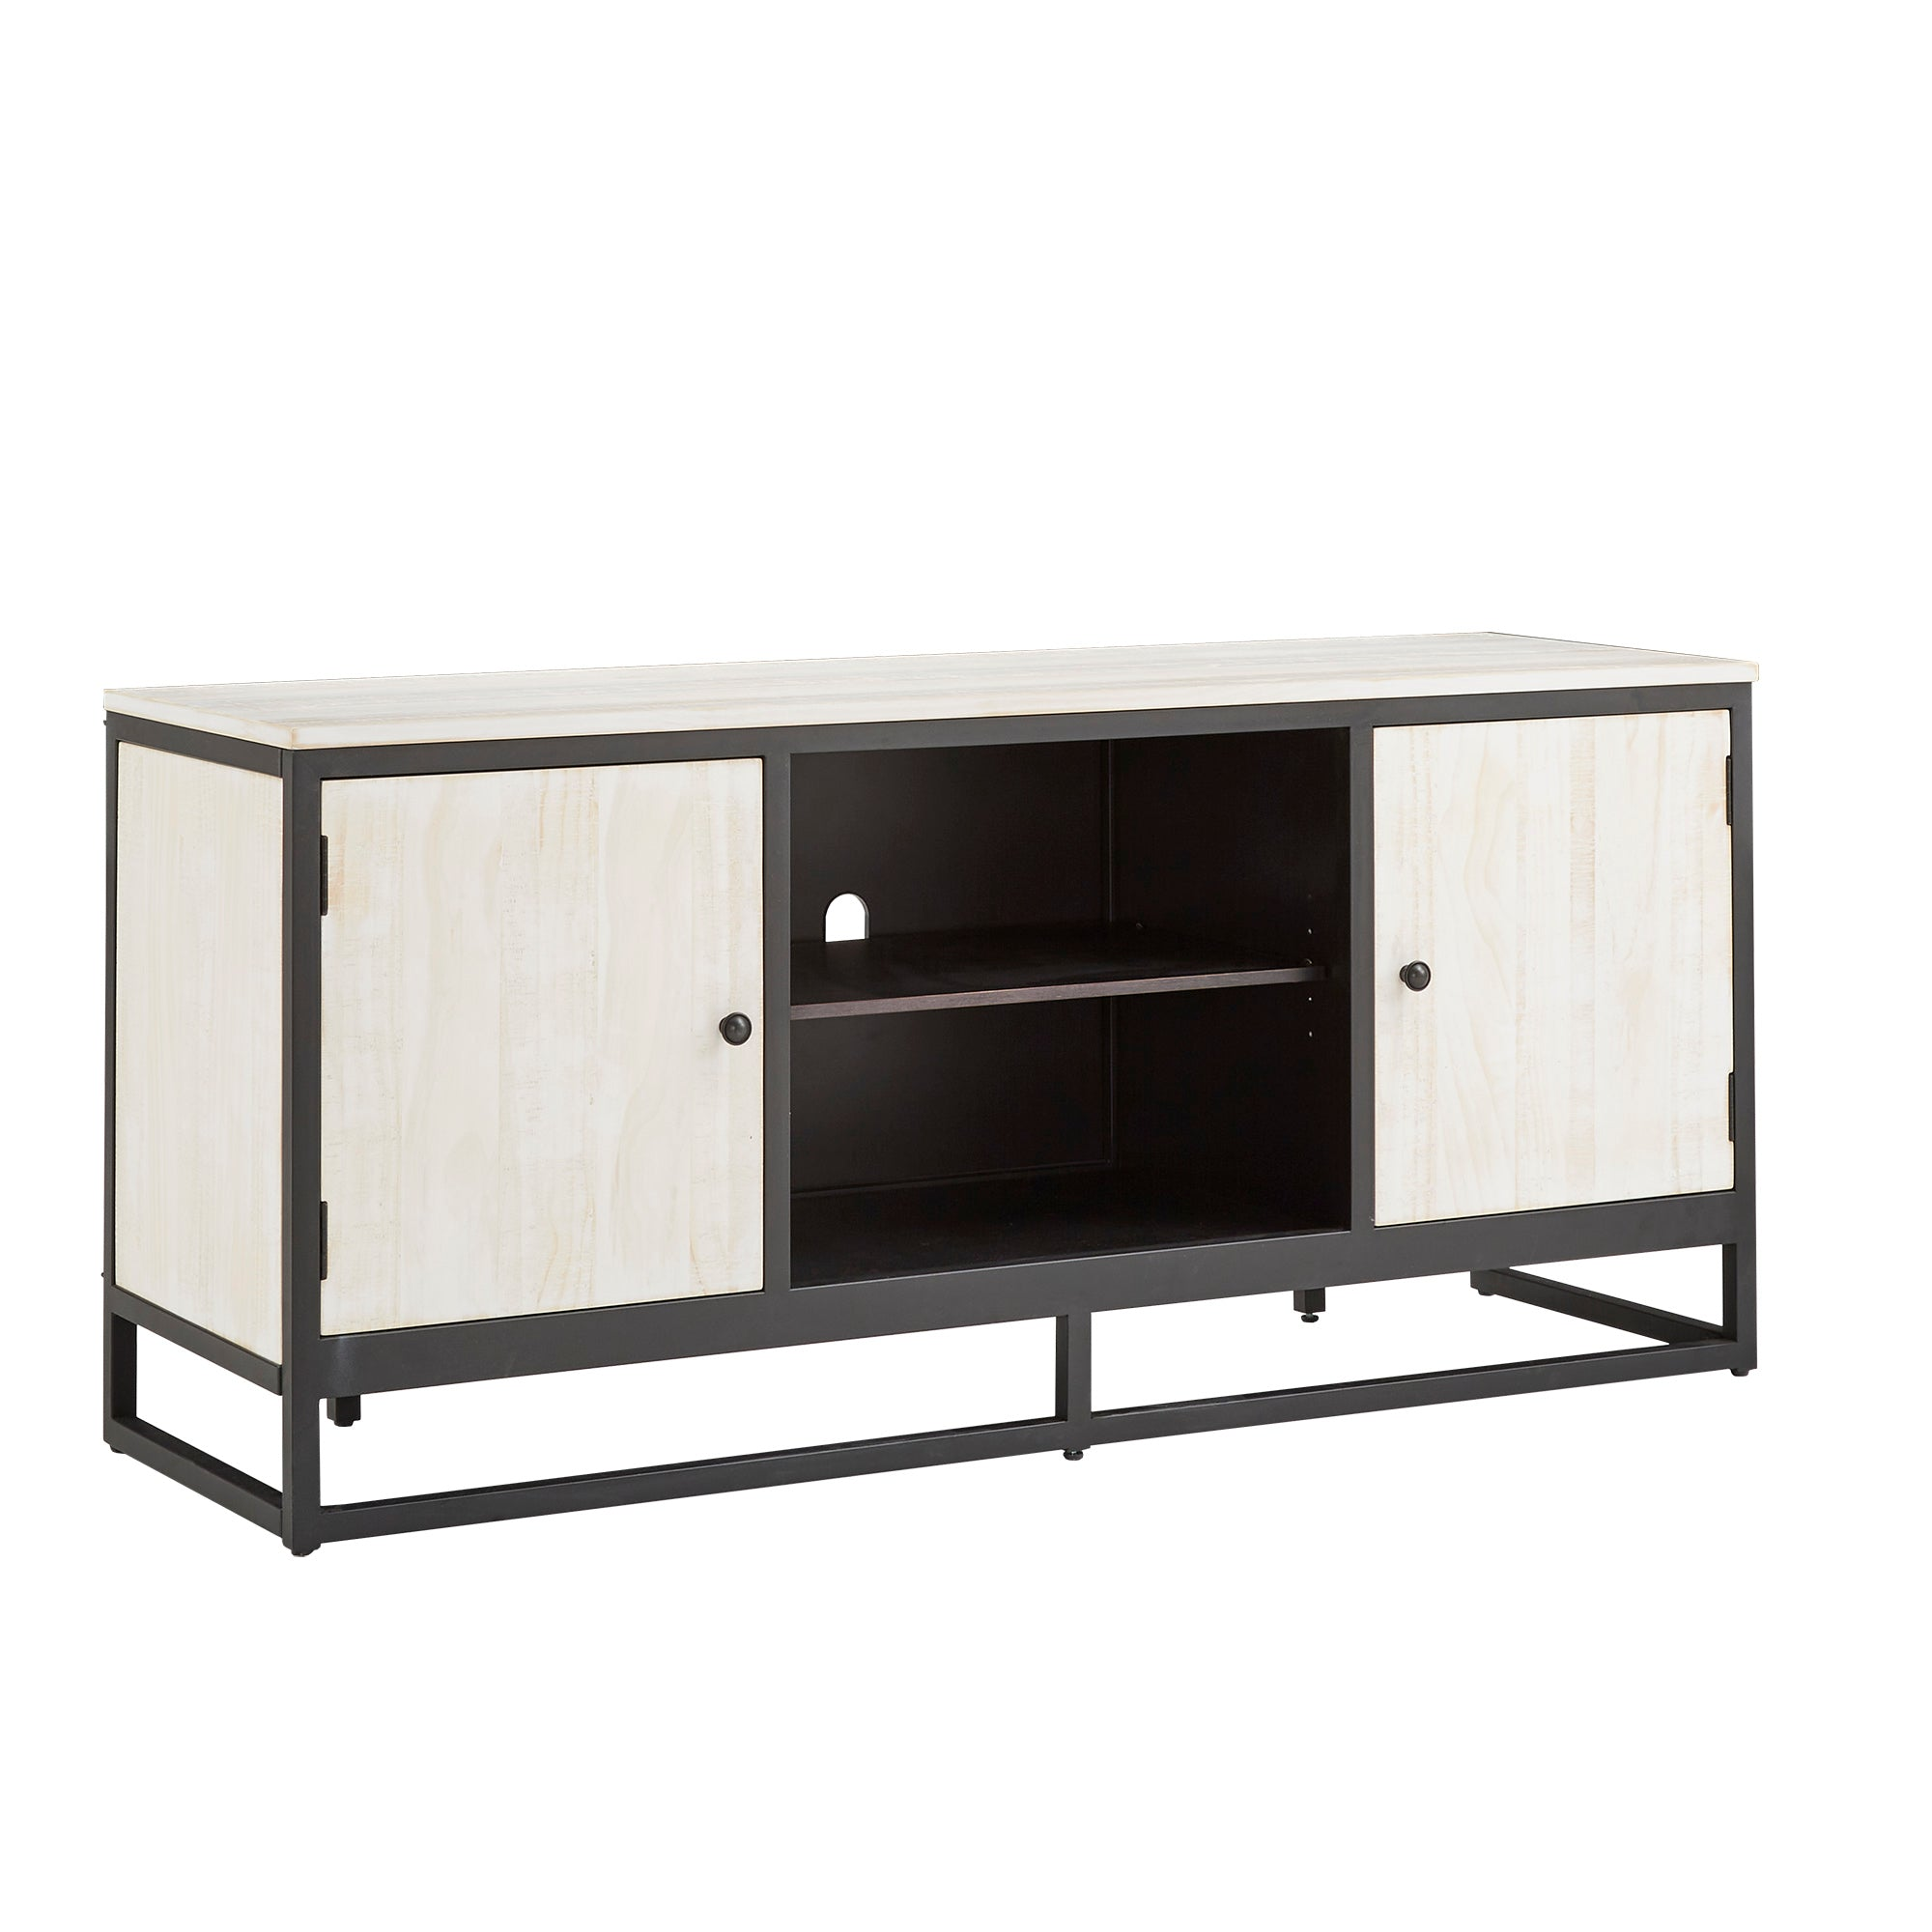 Distressed Finish Black Metal 58-inch TV Stand - Distressed Black Finish Black Metal 58-inch TV Stand